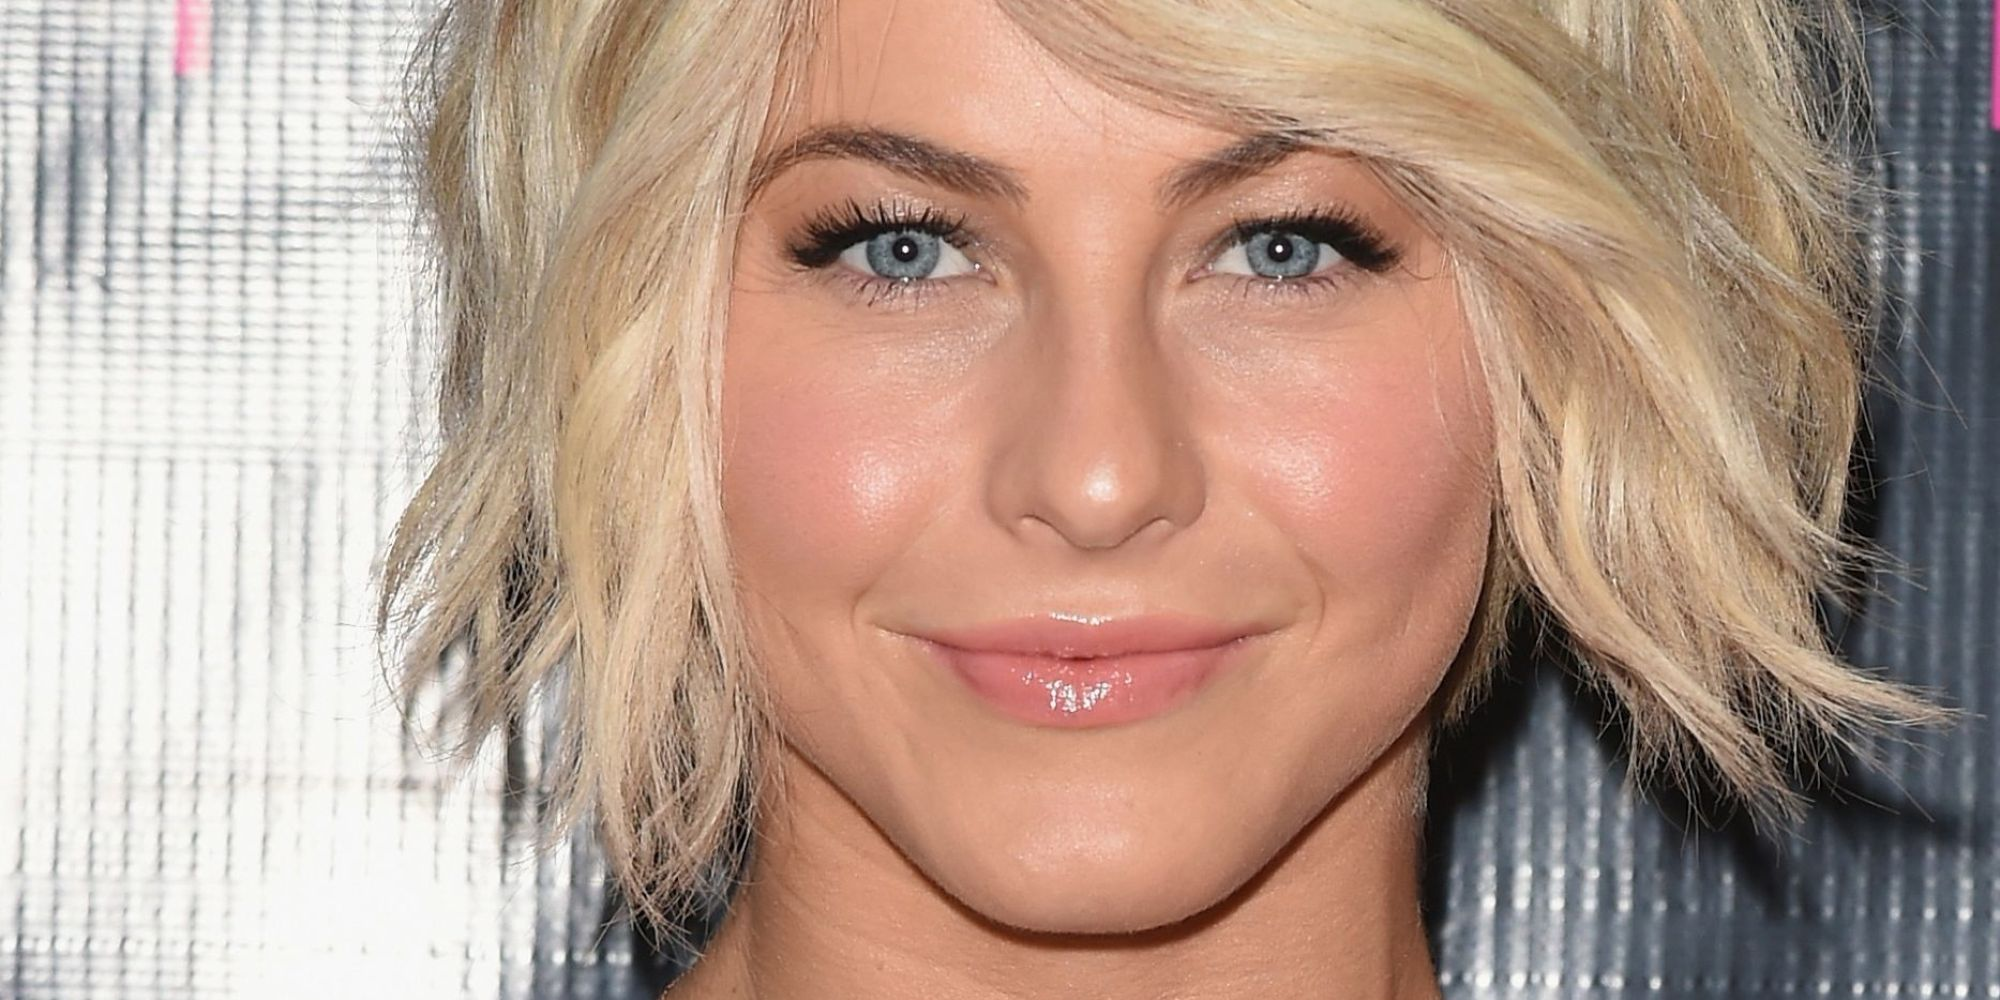 julianne hough hits the red carpet in a chic one-shoulder dress